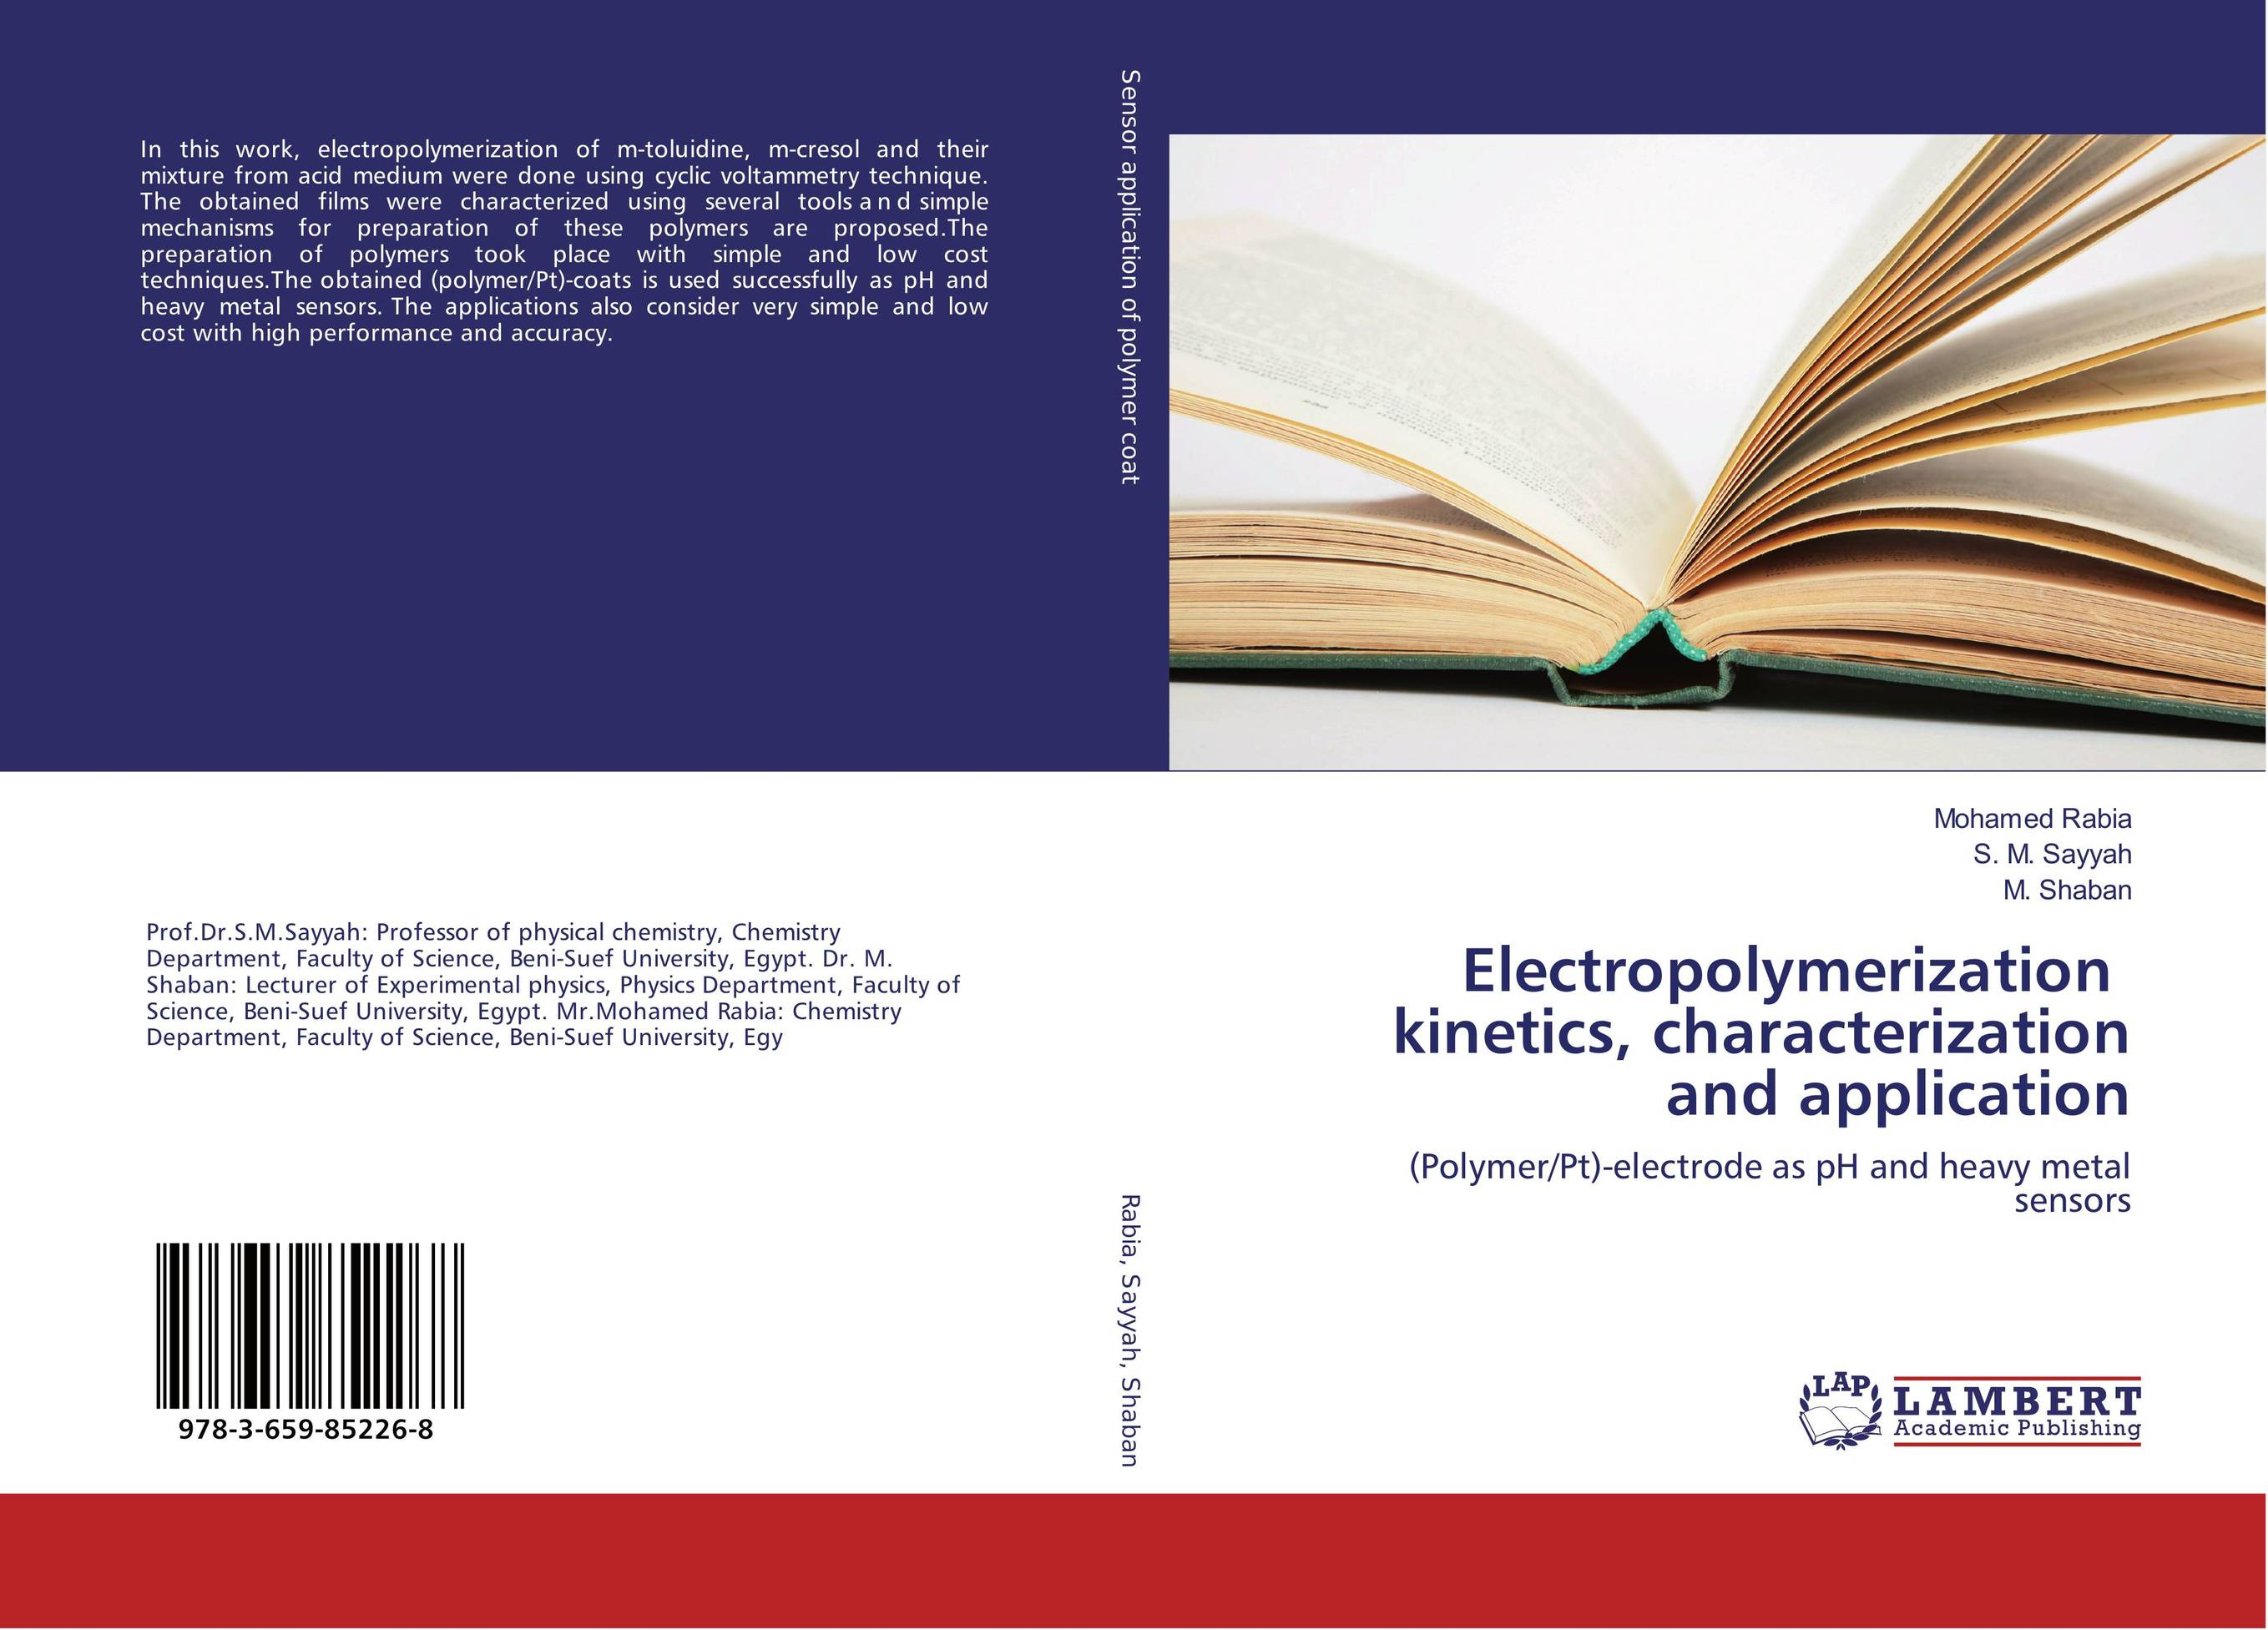 Electropolymerization kinetics, characterization and application steven bragg m cost reduction analysis tools and strategies